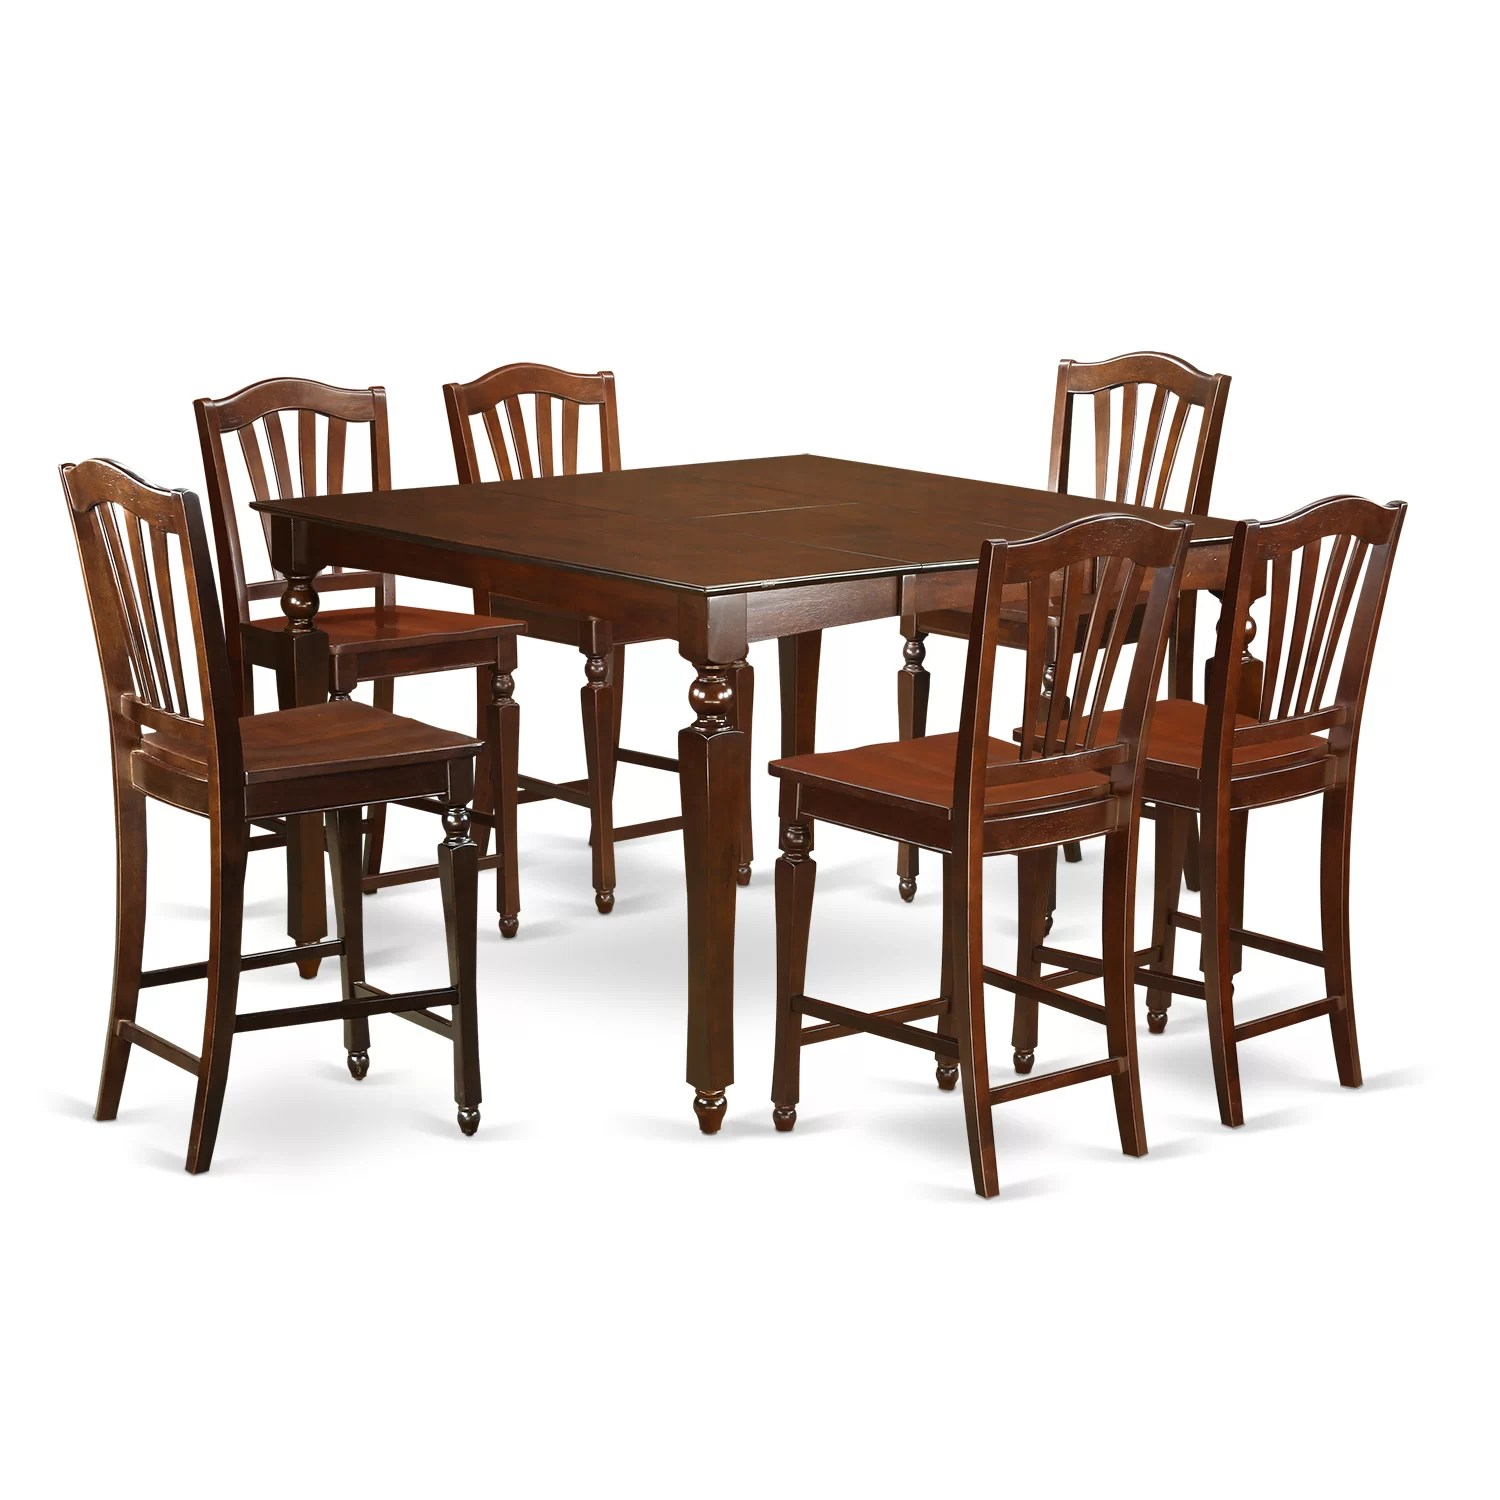 East West Chelsea 7 Piece Counter Height Dining Set amp